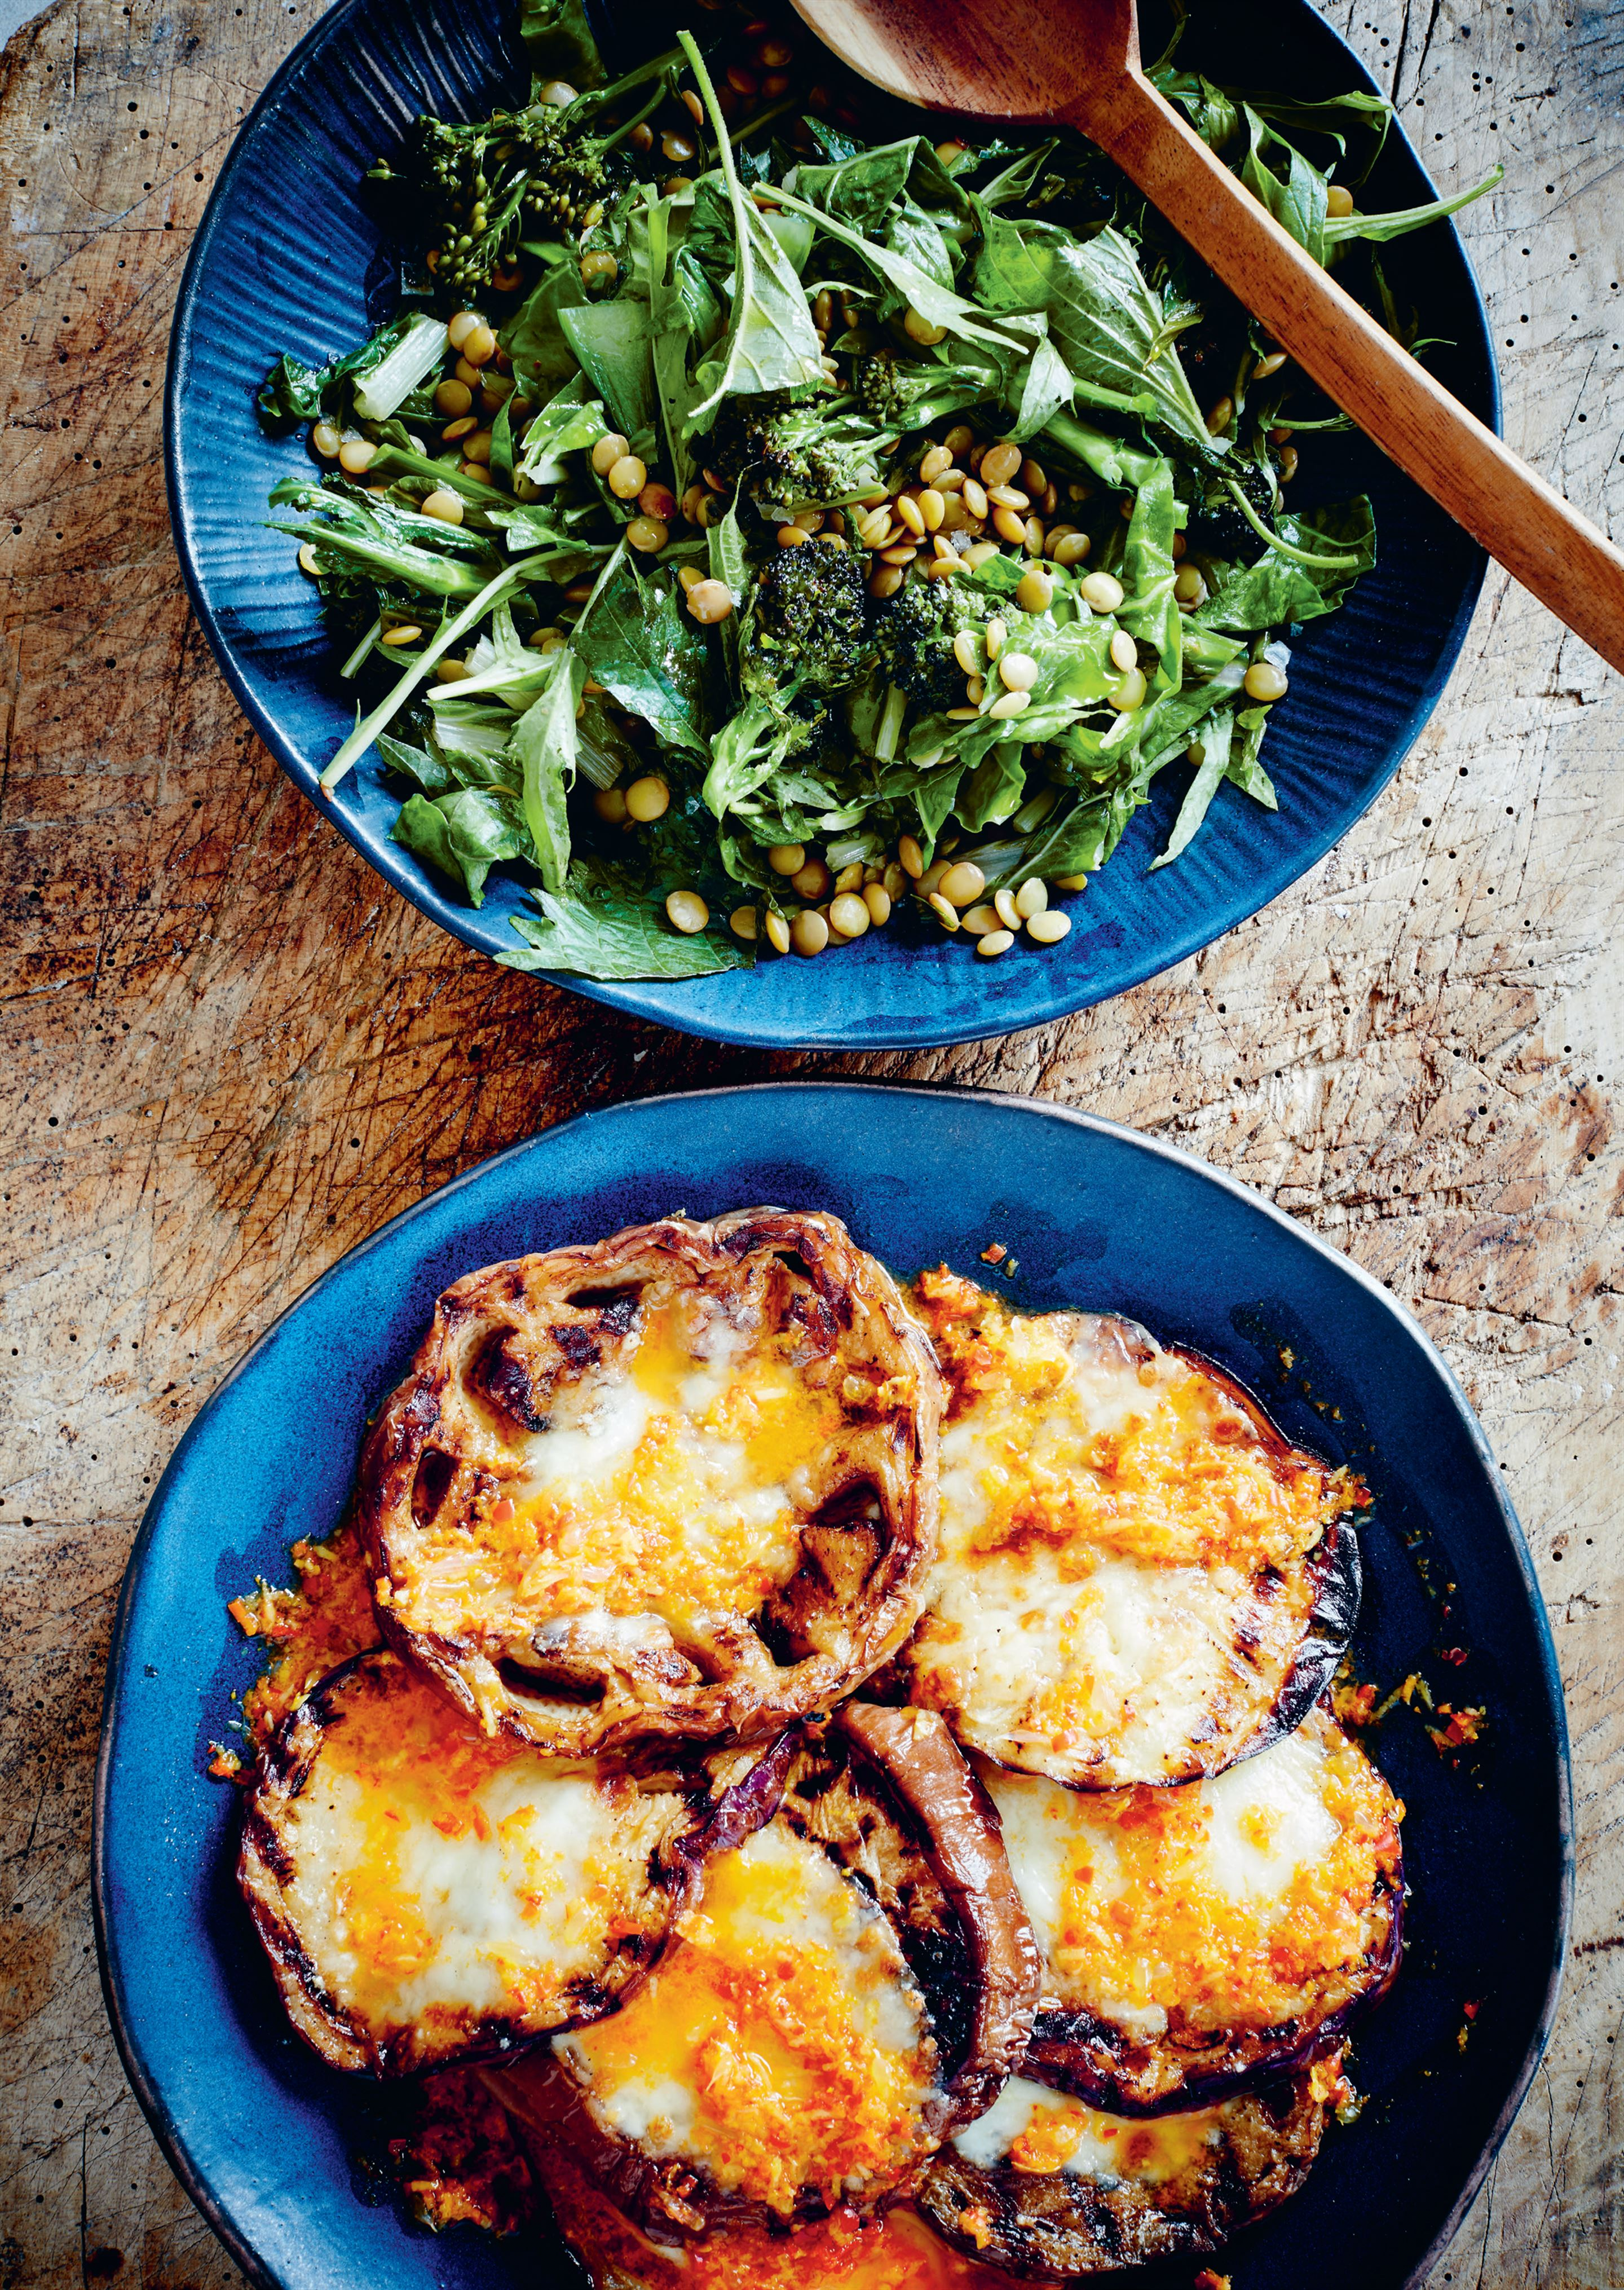 Grilled aubergines with mozzarella and yuzukosho